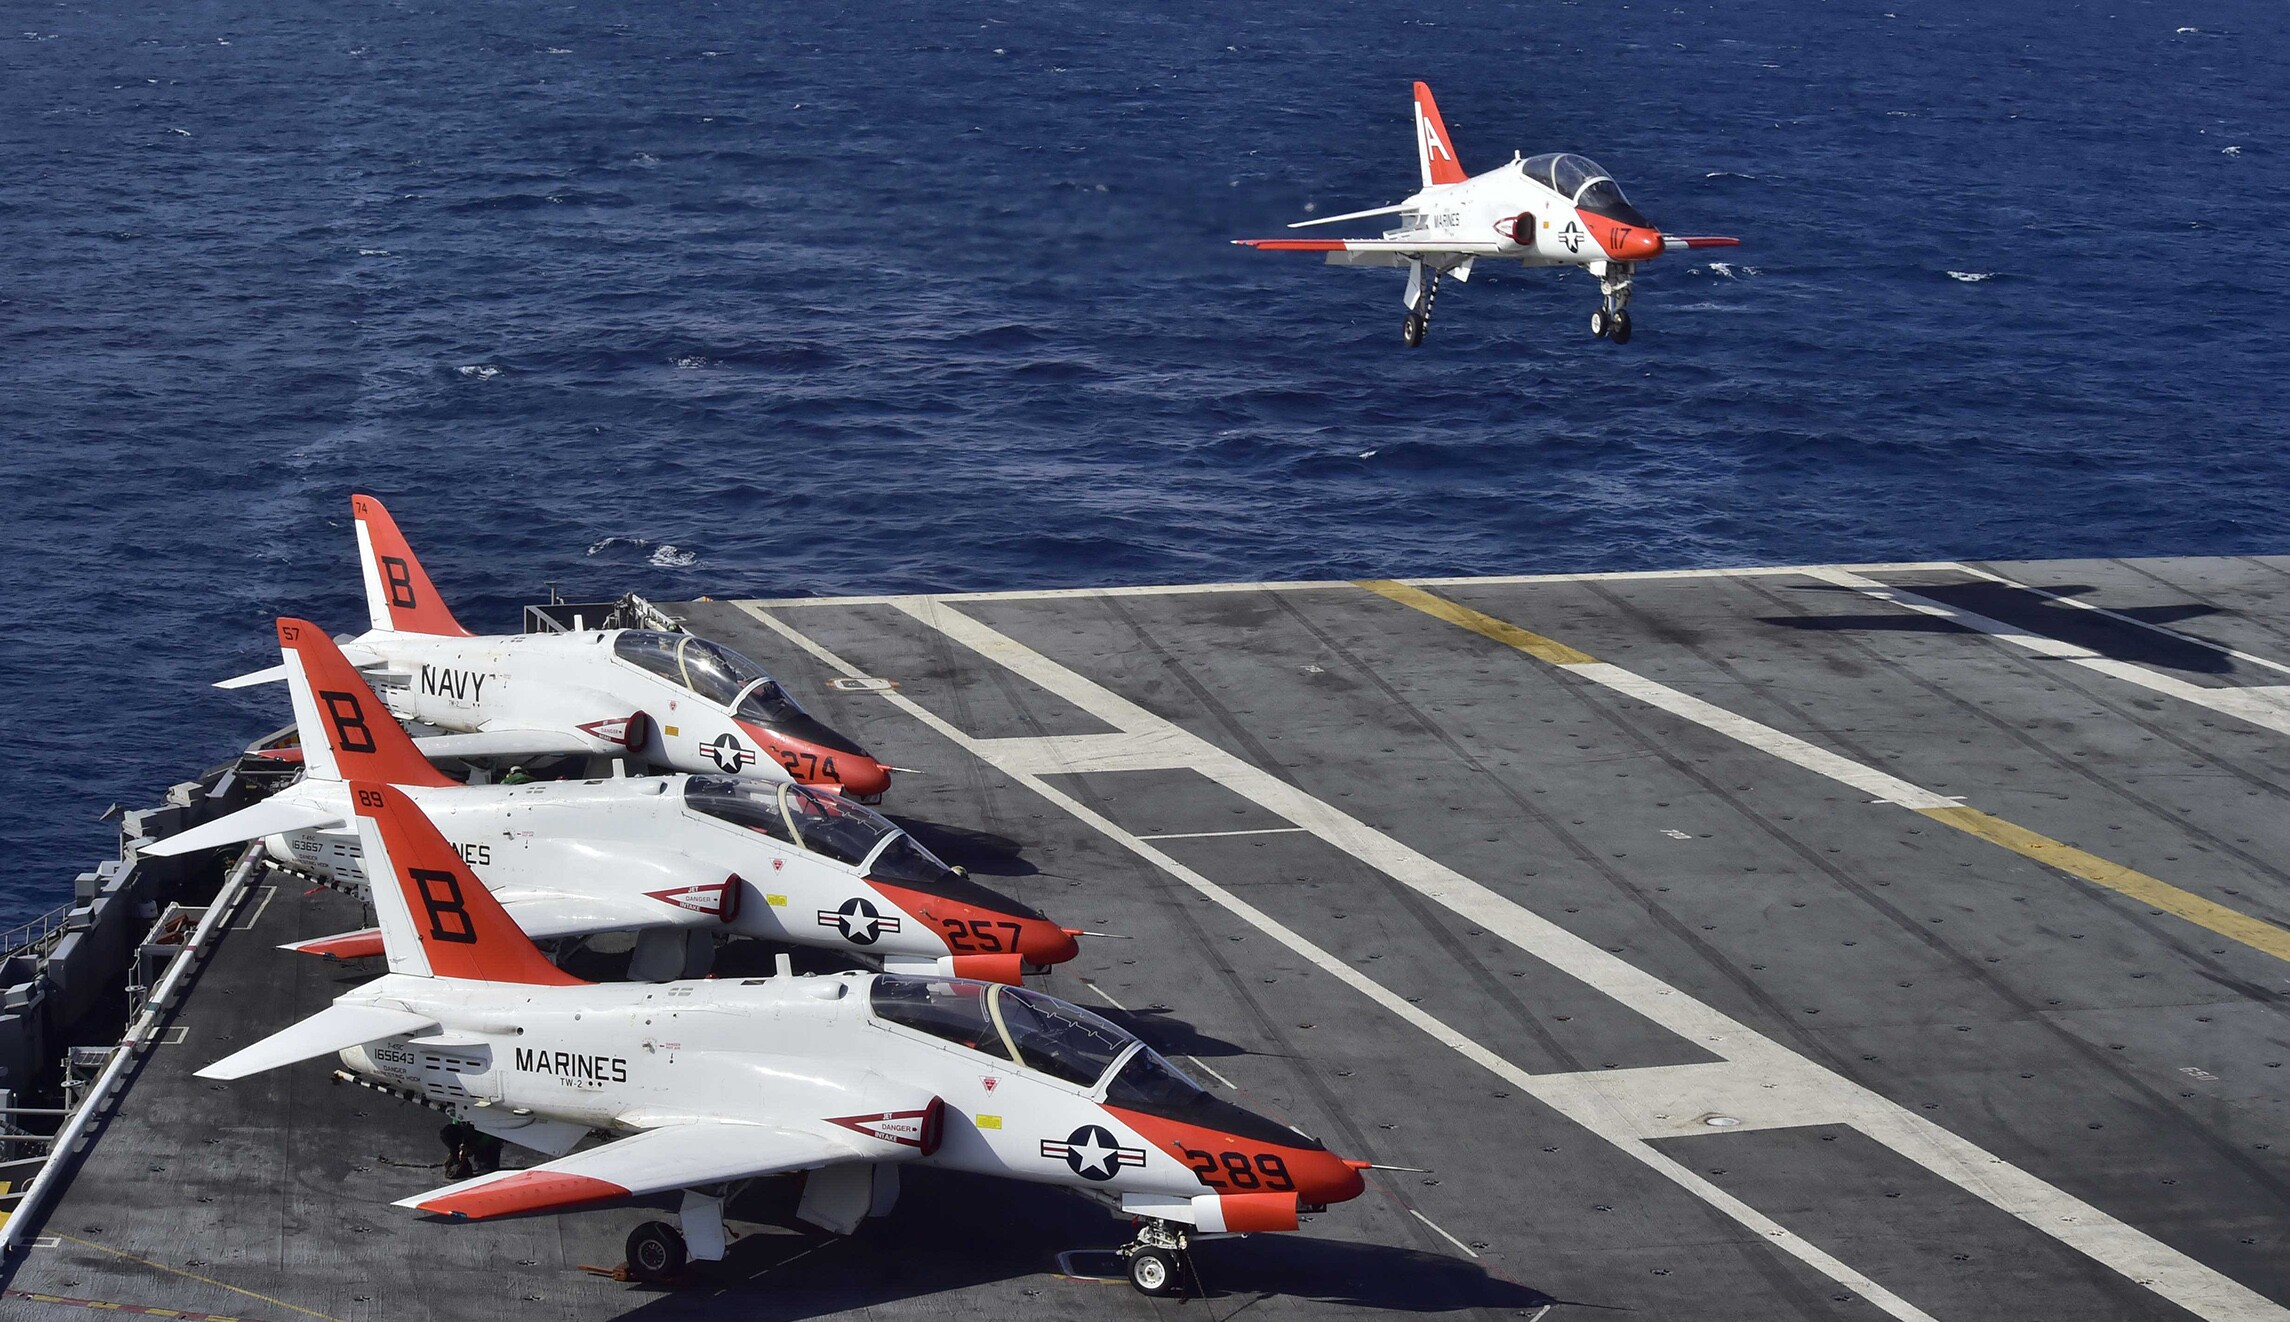 Days After Resuming Flight With The Type A Us Navy Boeing T 45 Goshawk Trainer Jet Crashed On Sunday Evening During Routine Training